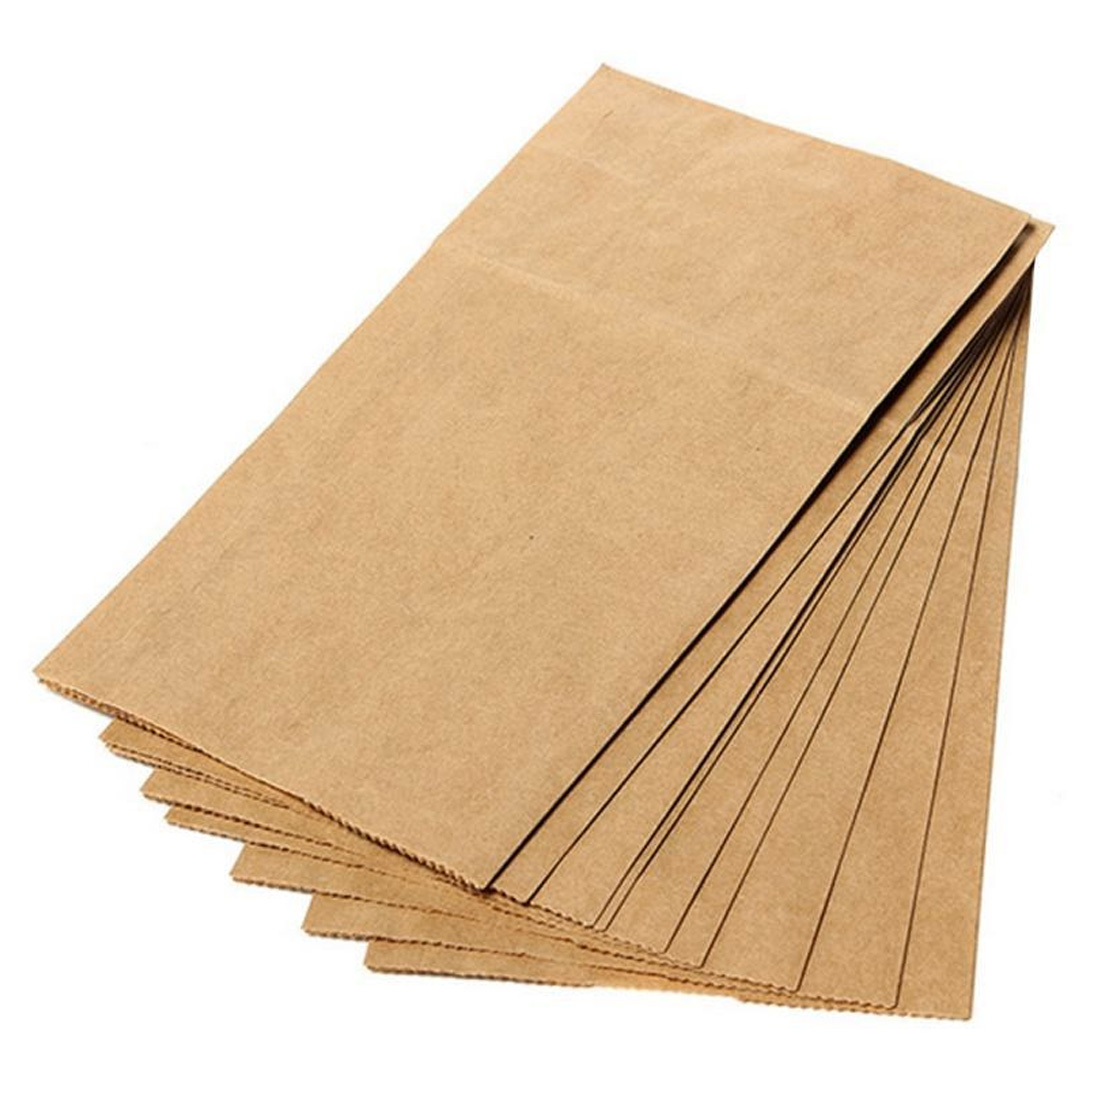 10pcs/set Biscuits Packaging Wrapping Supplies For Party Wedding Favors Handmade Bread Cookies Gift Brown Kraft Paper Bag